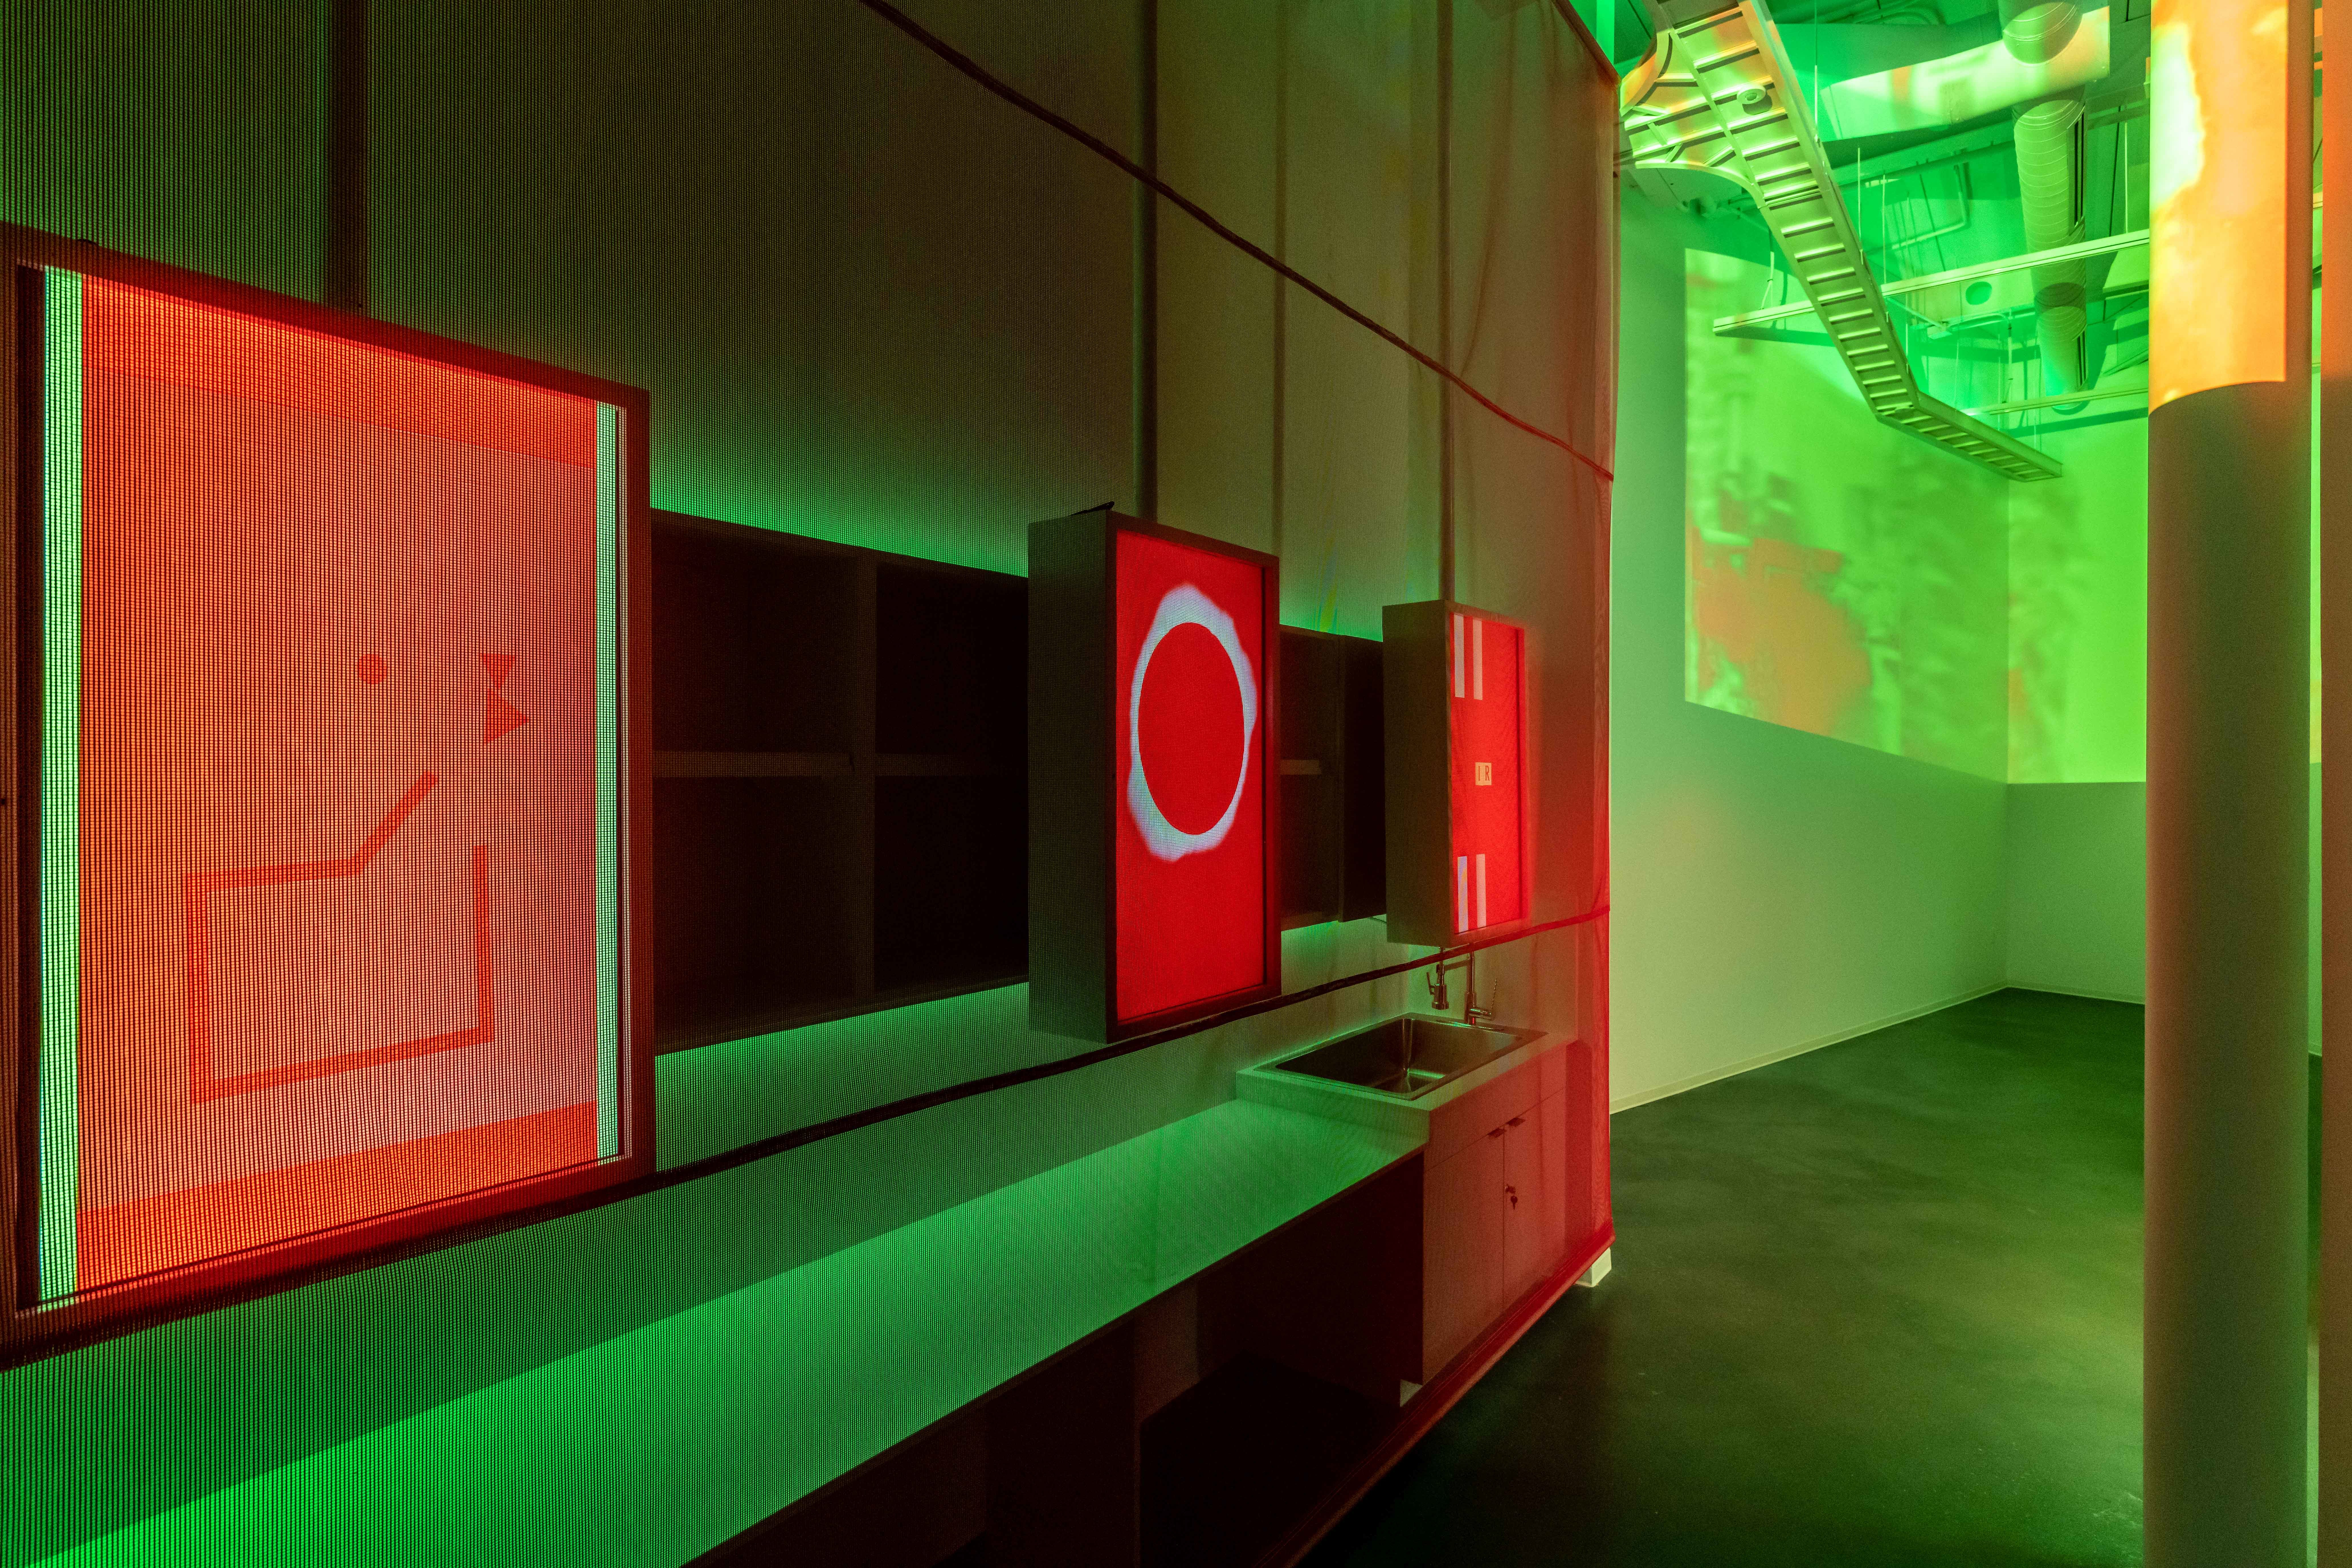 A small room shines with green light and red images on screens